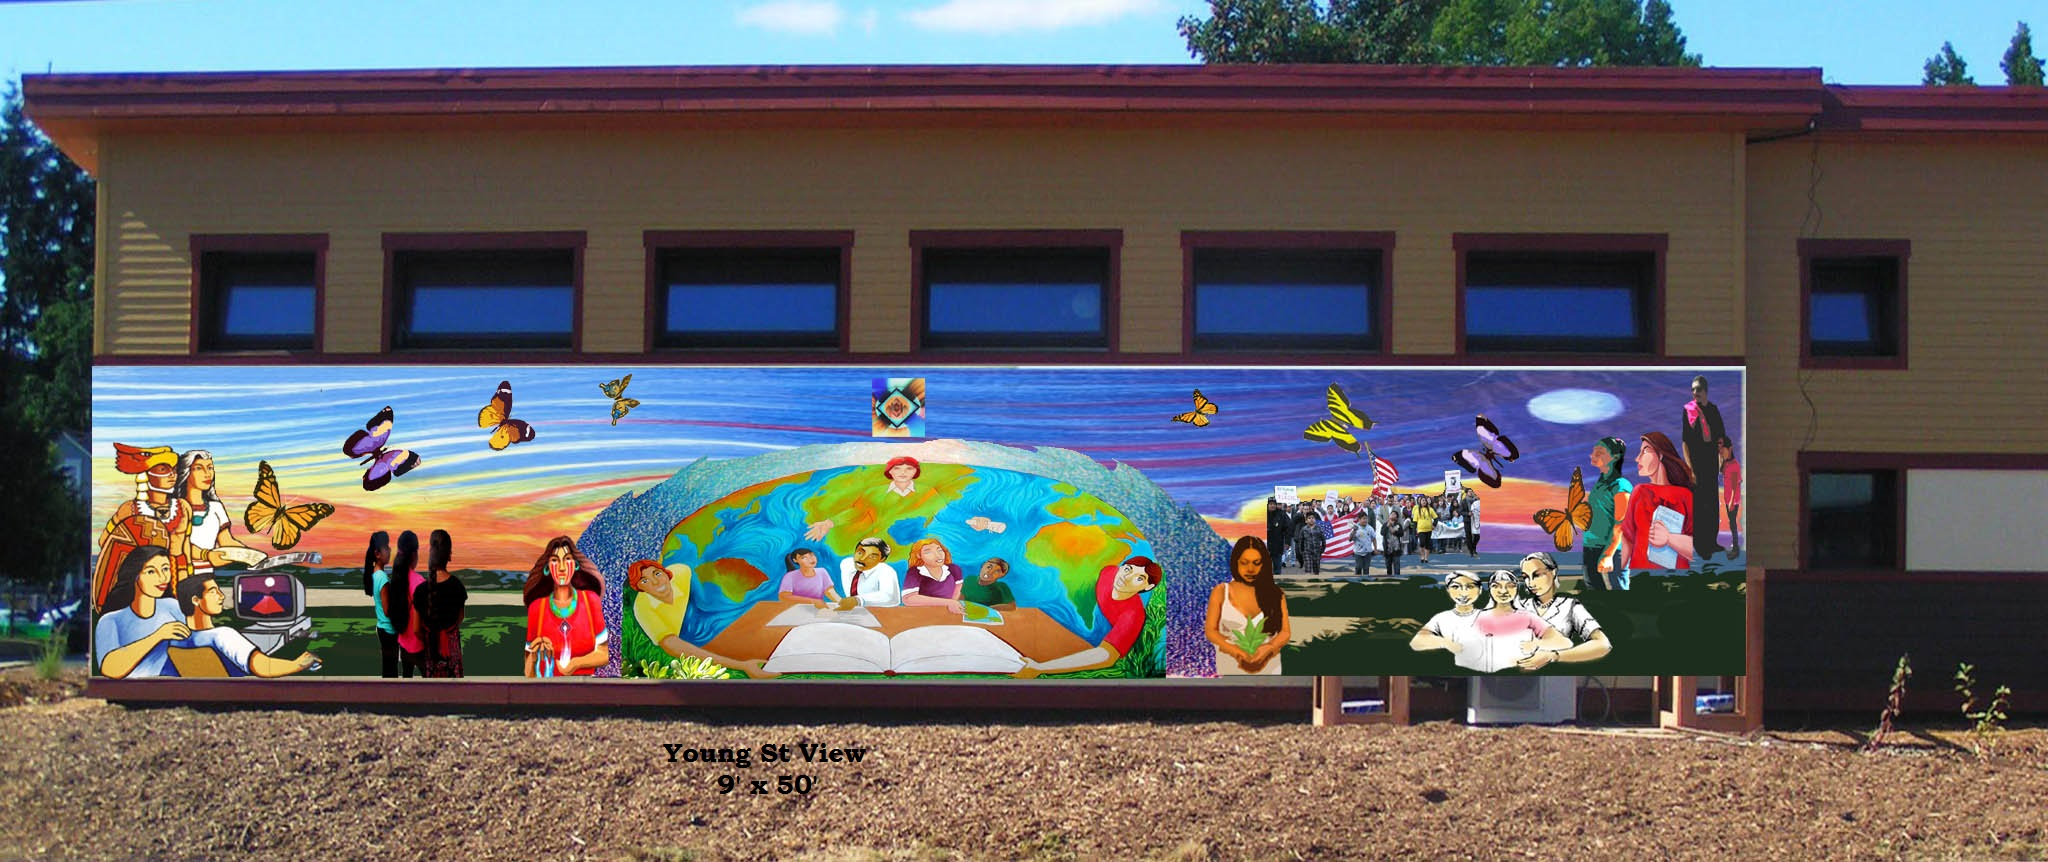 Help us paint history cli mural project capaces for Community mural